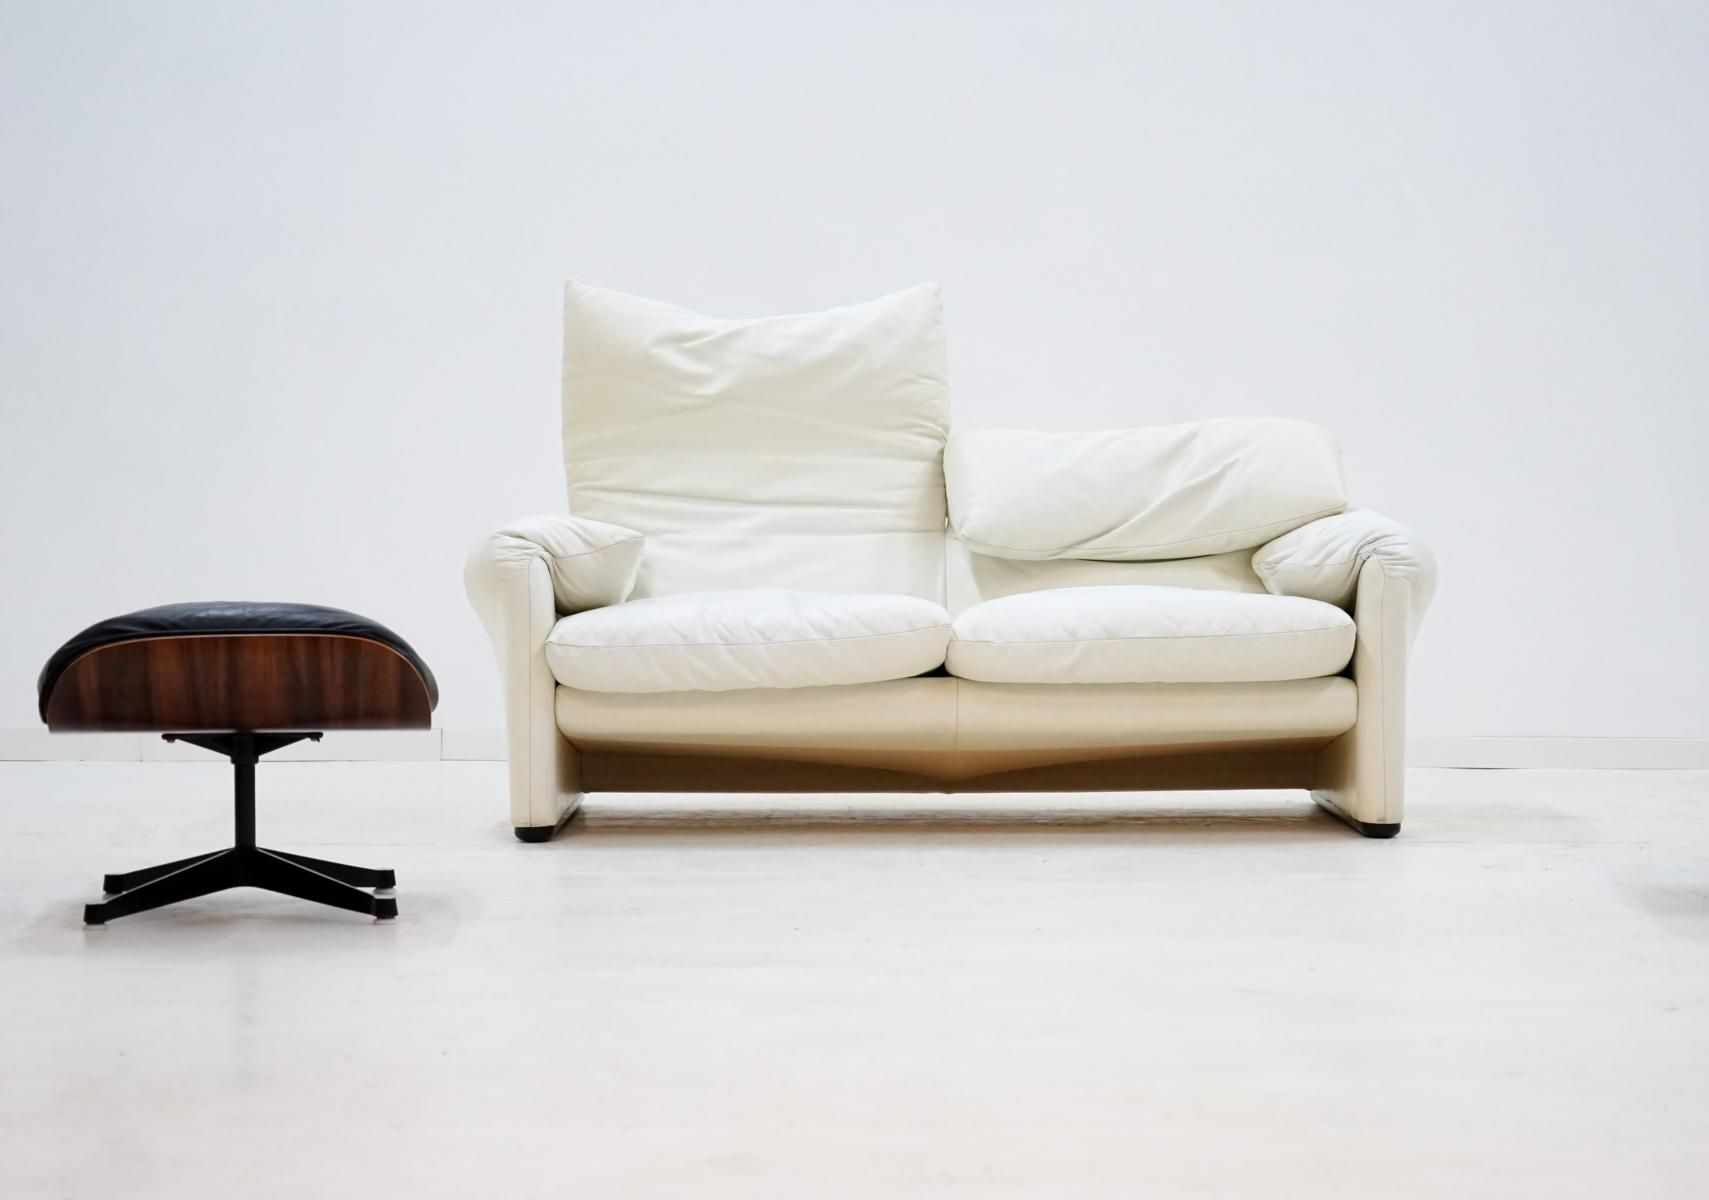 Maralunga 2 seater sofa in white leather by vico magestretti for maralunga 2 seater sofa in white leather by vico magestretti for cassina for sale at pamono parisarafo Choice Image